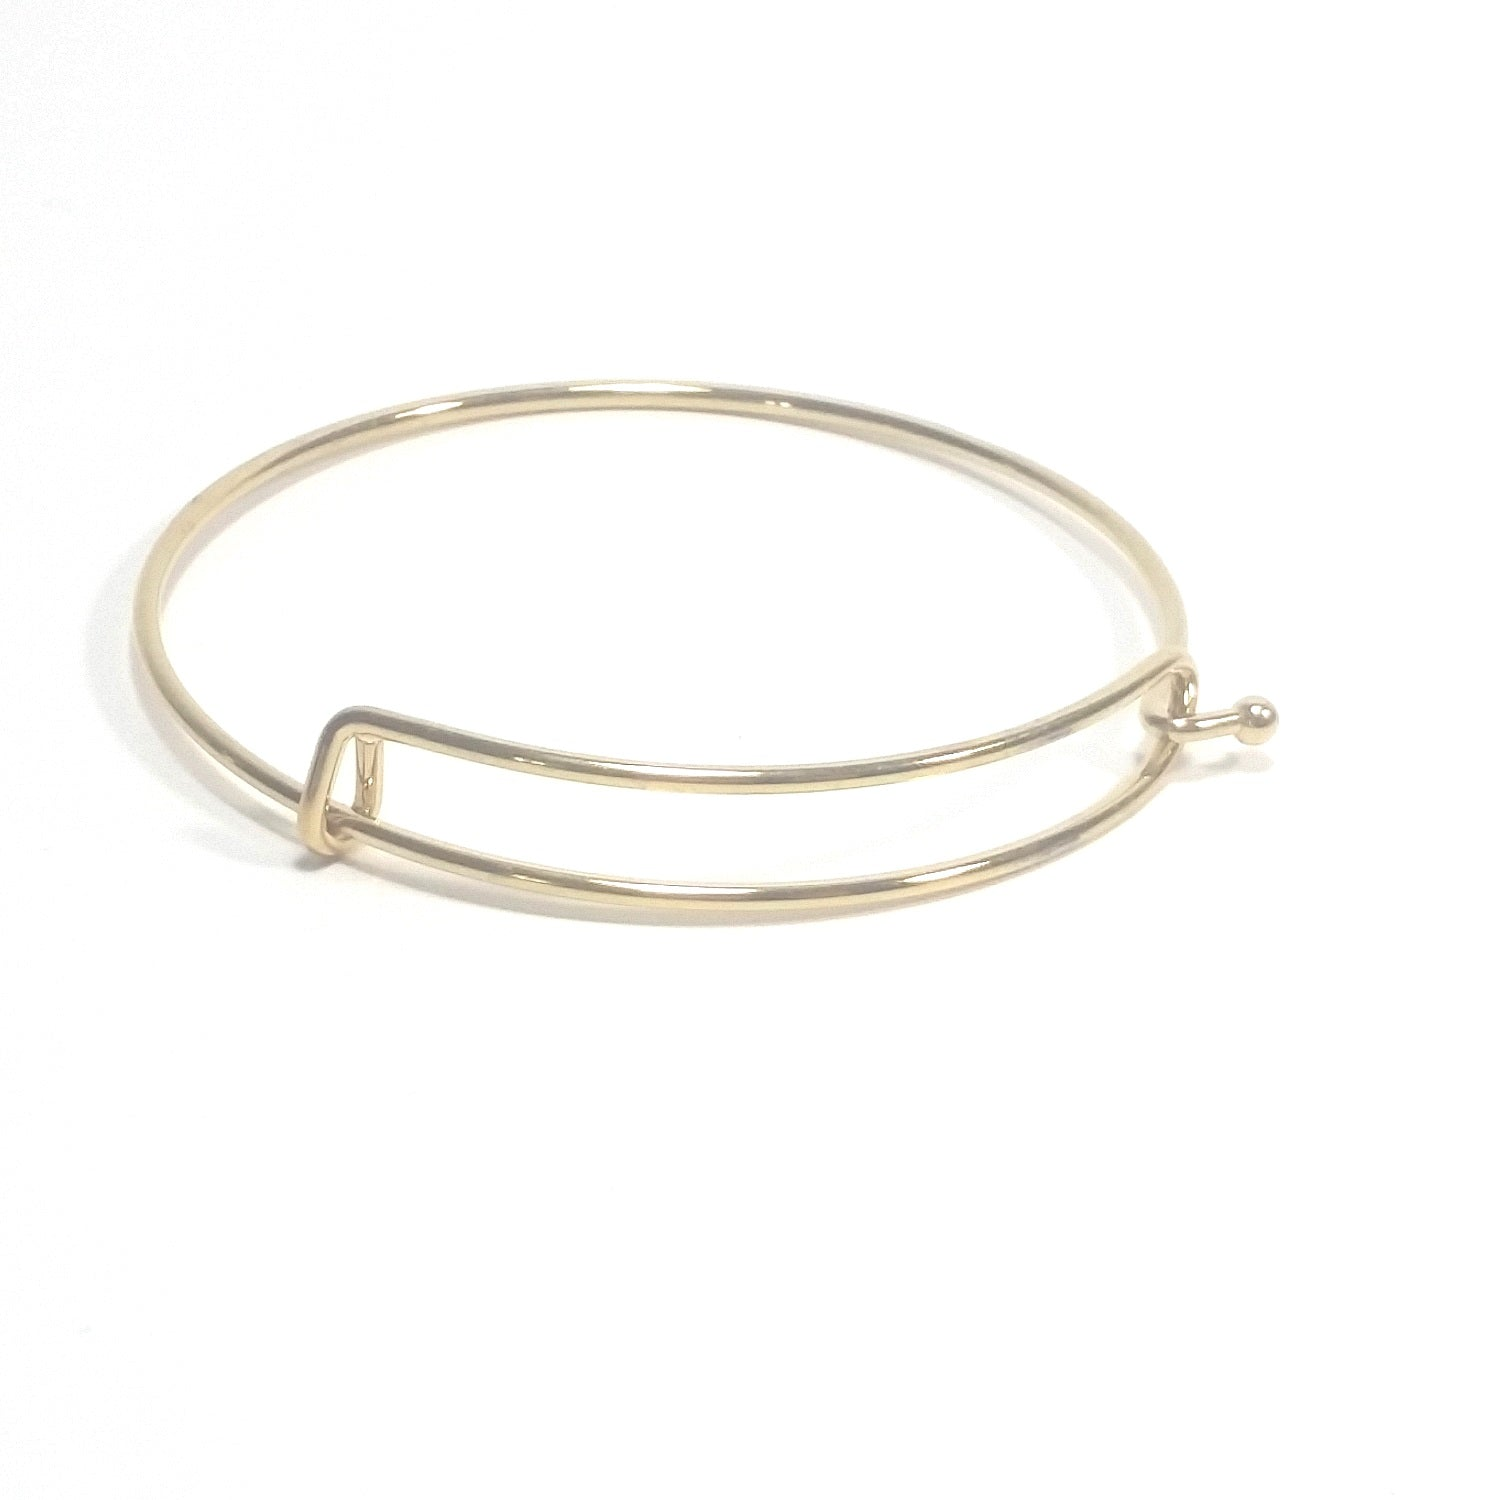 product watches overstock karat bangle today shipping jewelry bangles yellow bracelets gold free